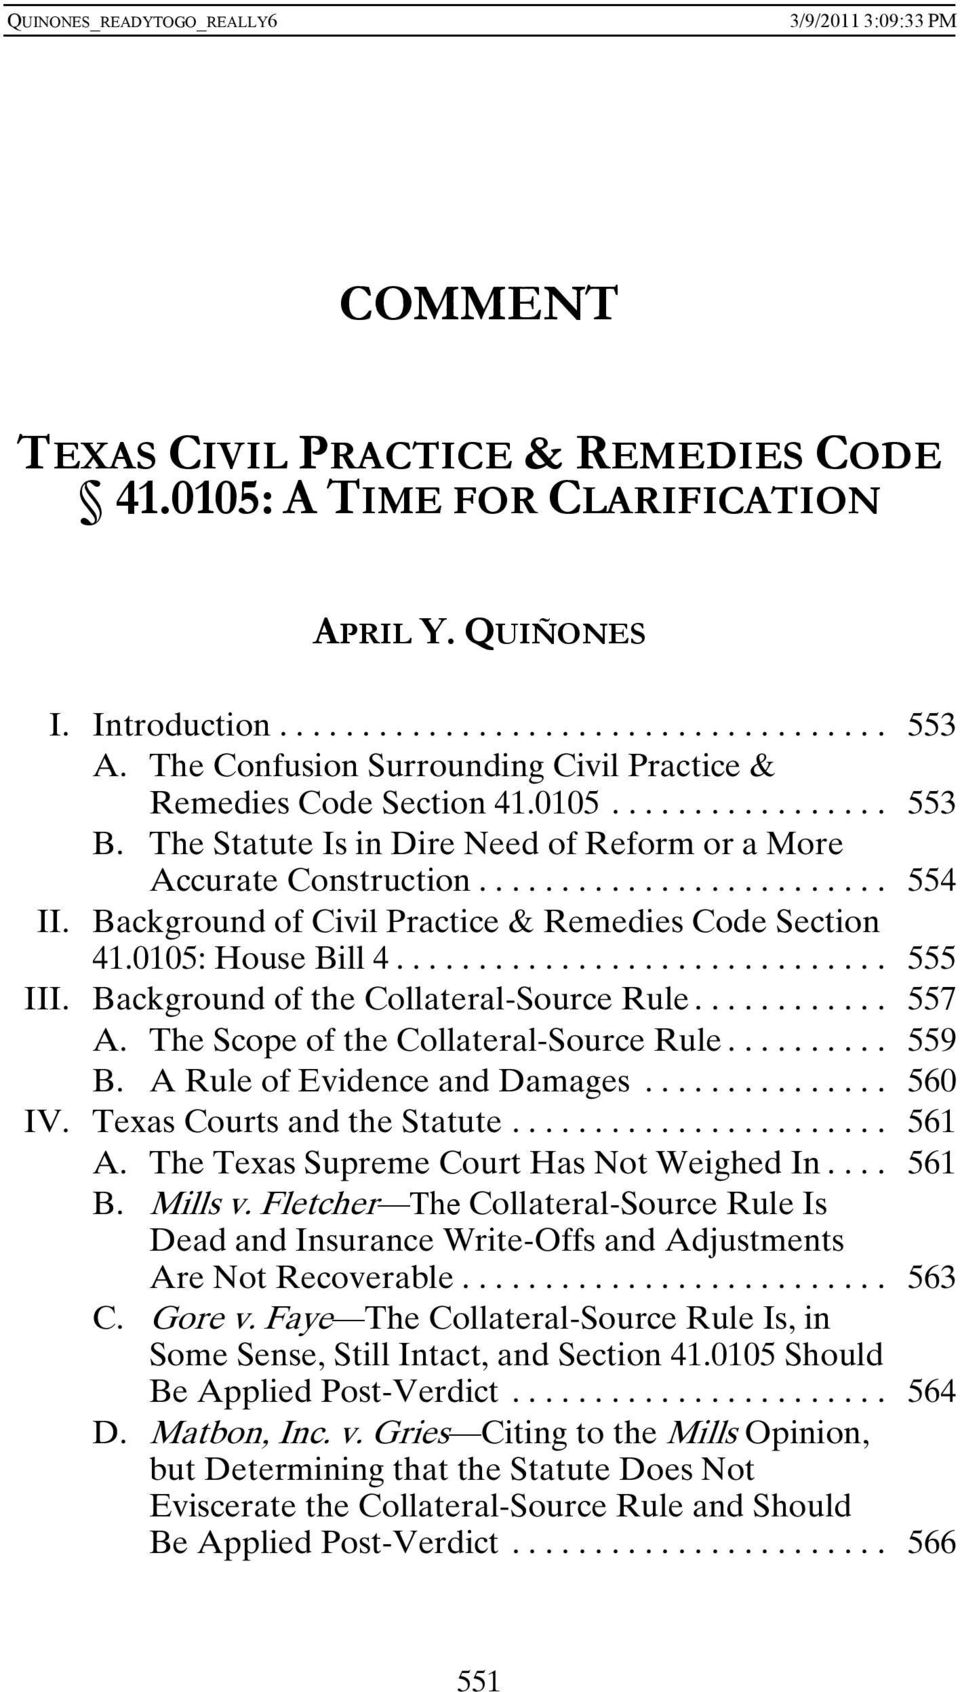 Background of the Collateral-Source Rule... 557 A. The Scope of the Collateral-Source Rule... 559 B. A Rule of Evidence and Damages... 560 IV. Texas Courts and the Statute... 561 A.